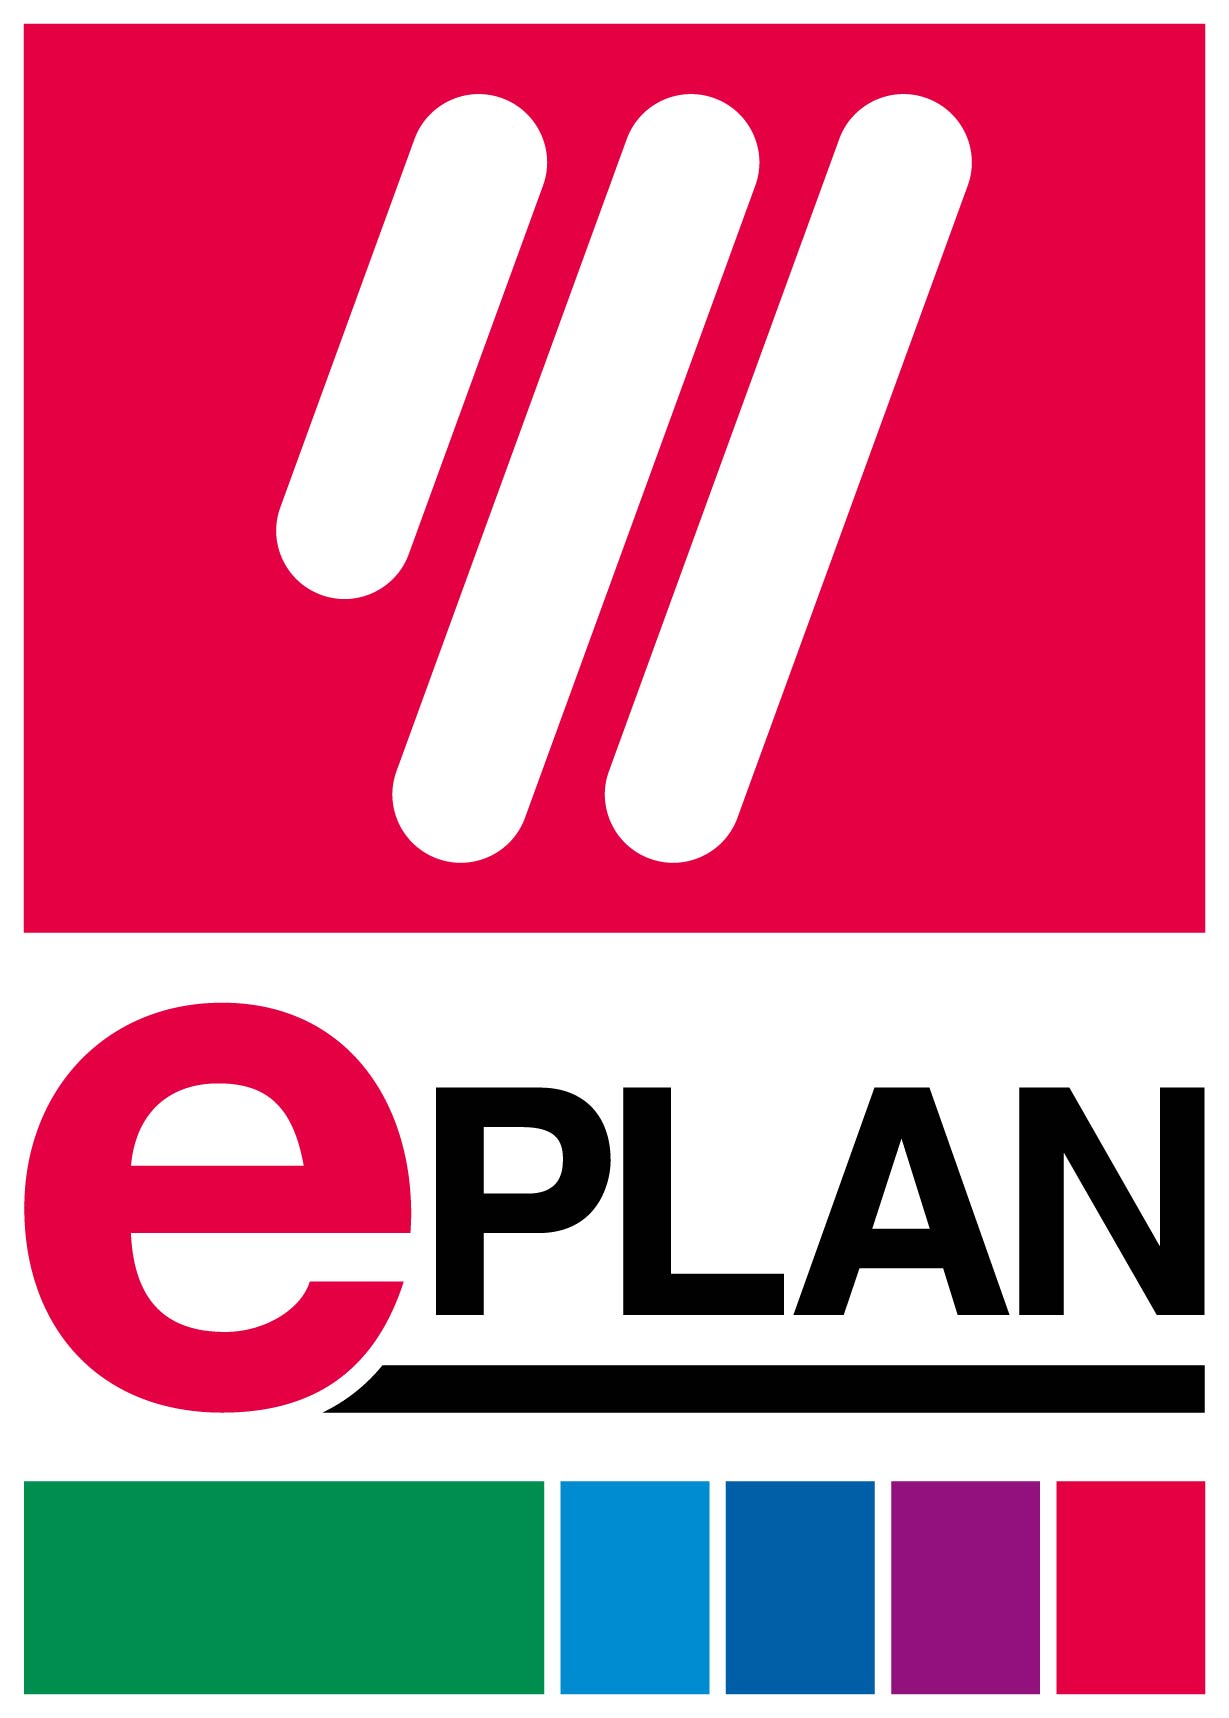 EPLAN Software & Services 株式会社